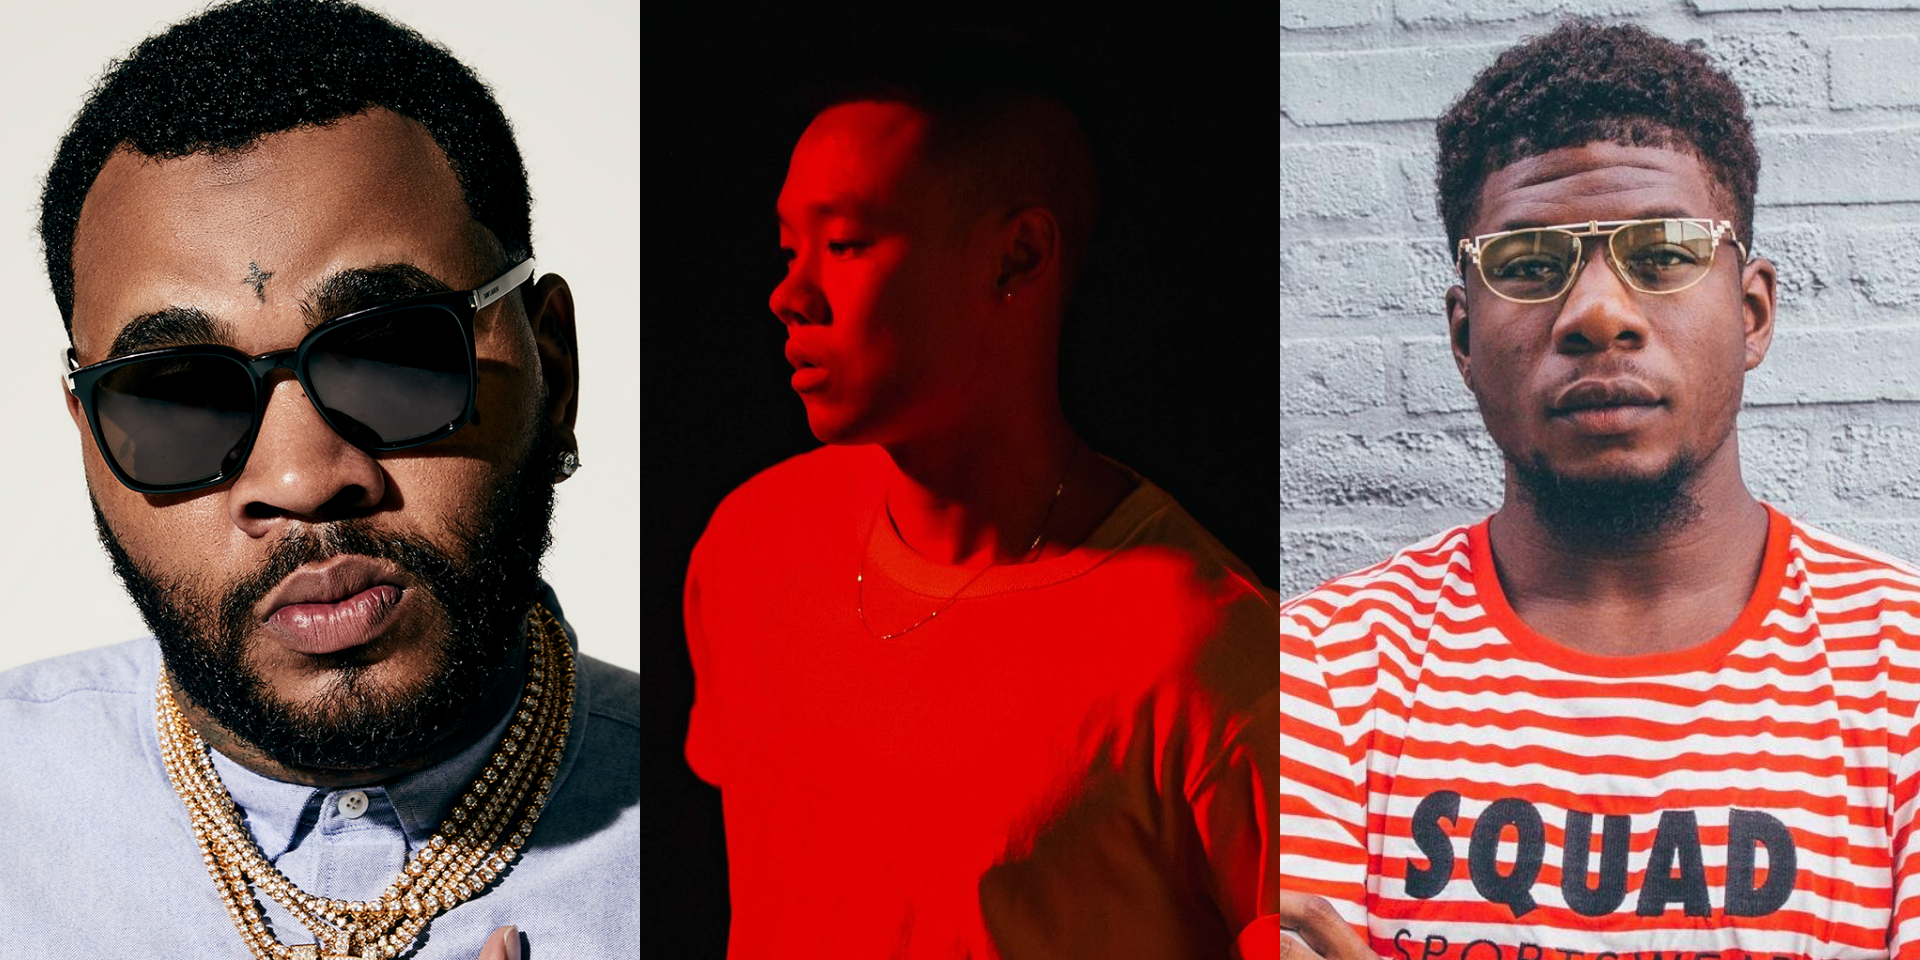 """Vans announces full lineup for """"The Takeover"""" featuring Kevin Gates, Mick Jenkins, Bohan Phoenix and more"""